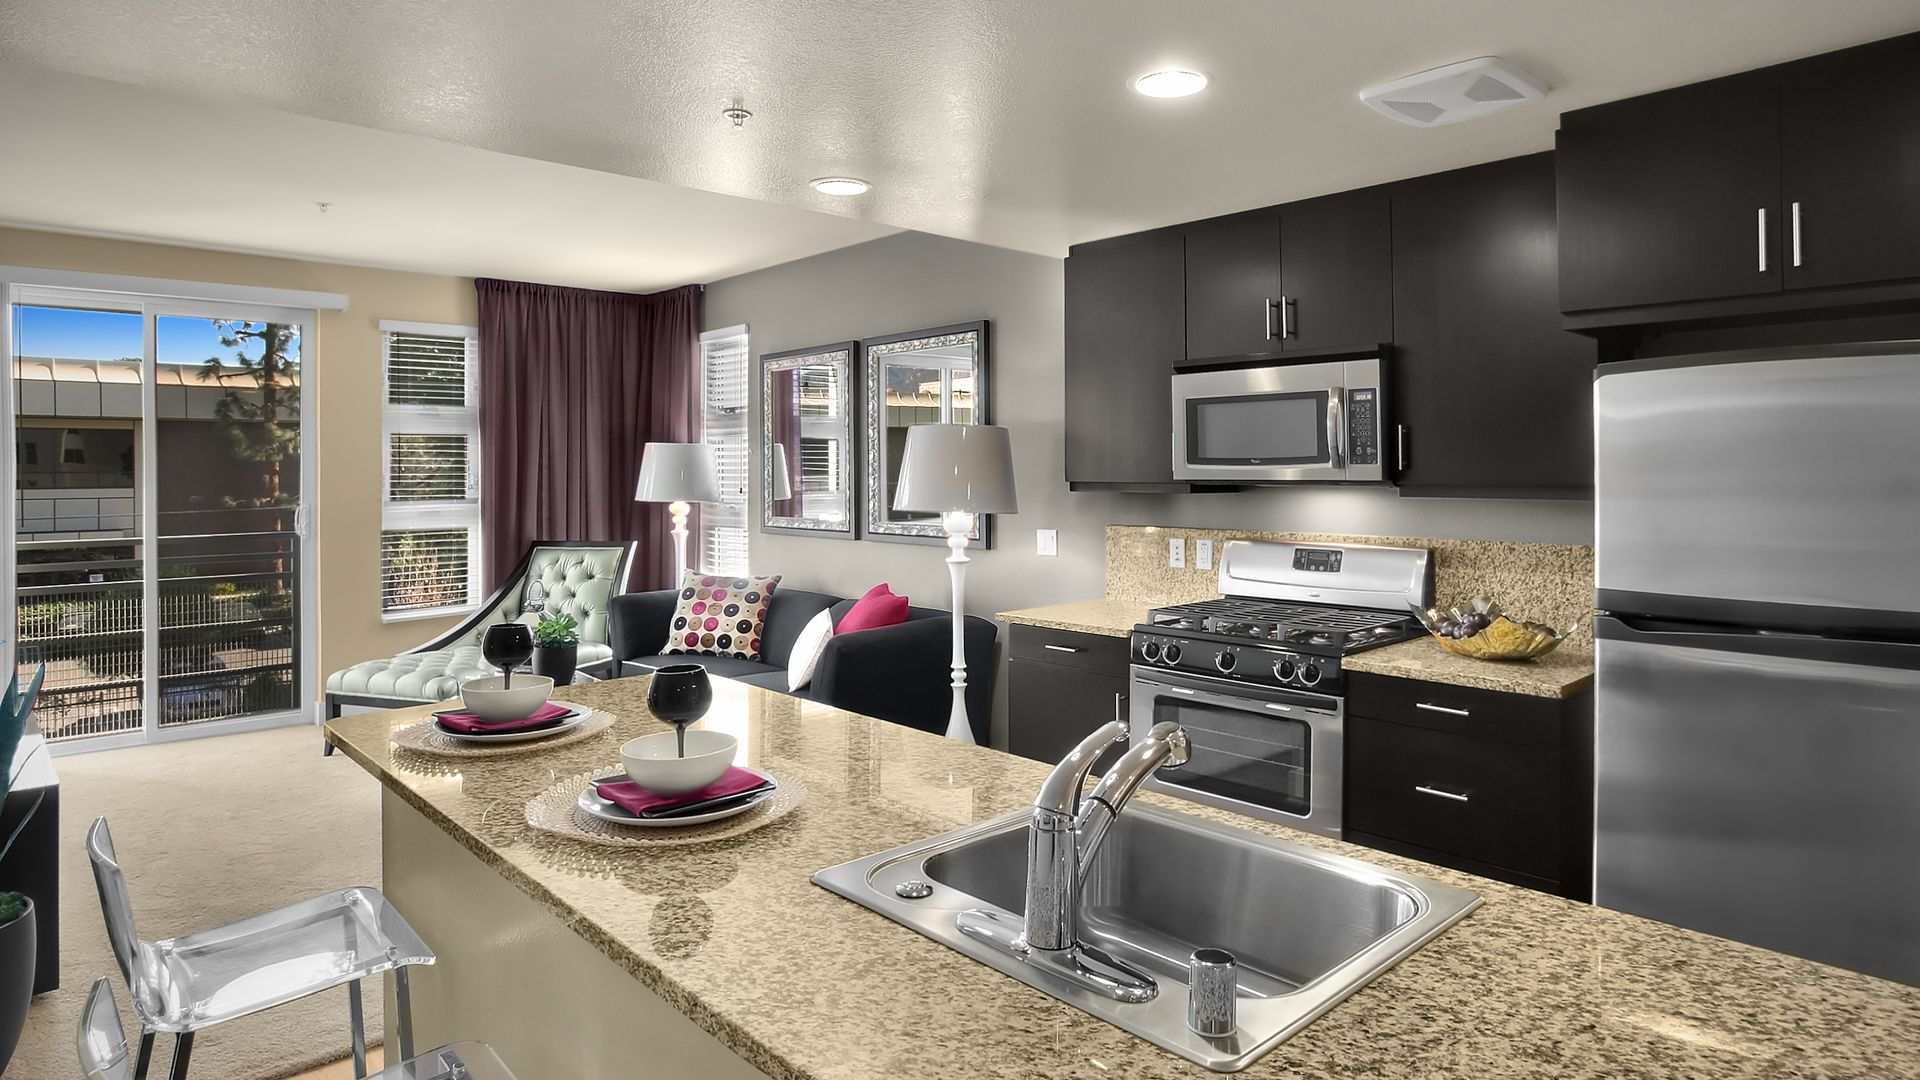 Westgate Apartments - Kitchen